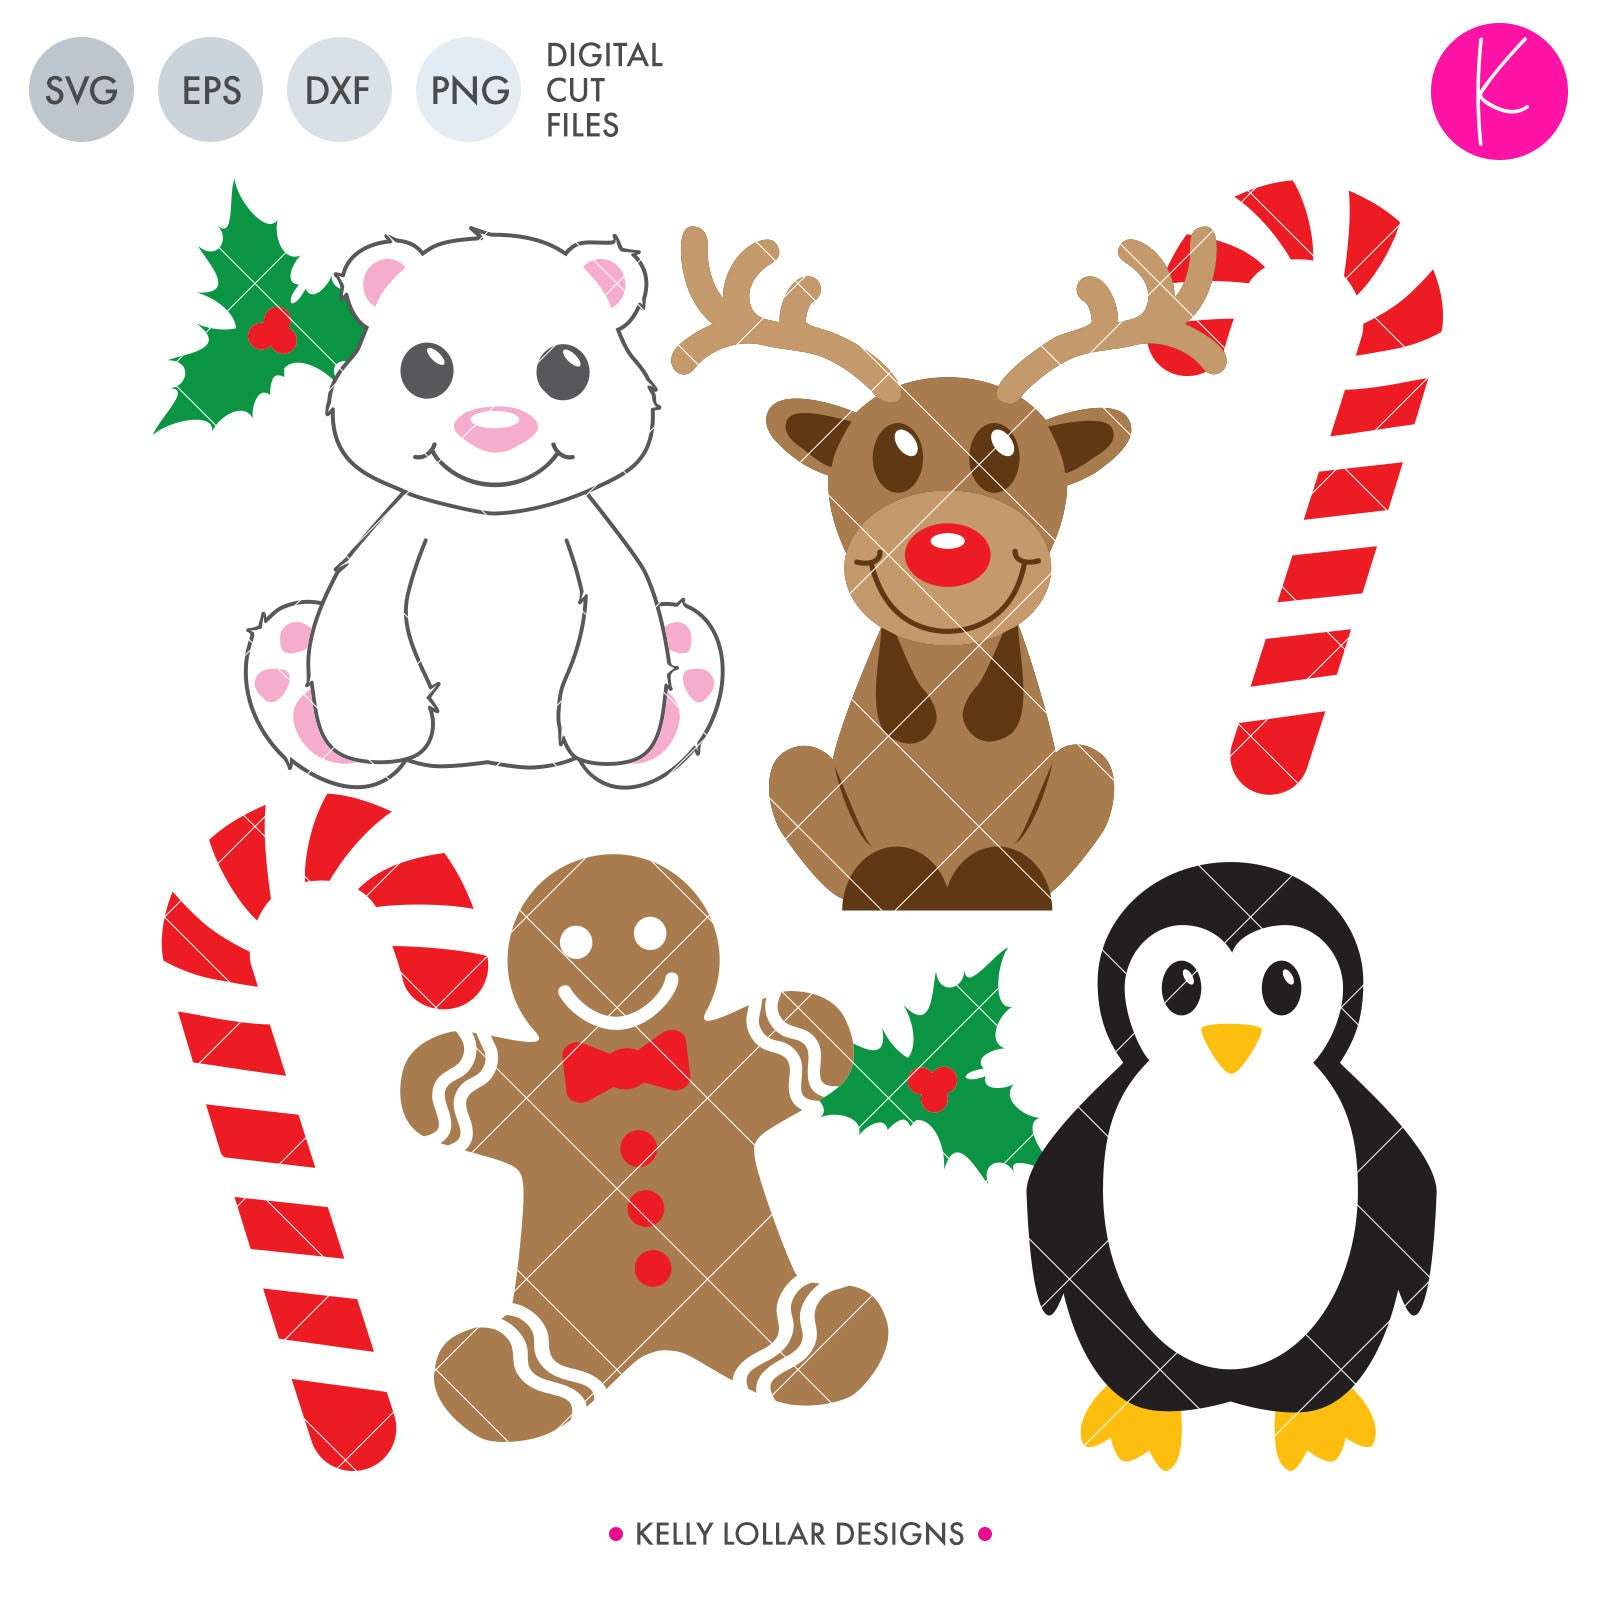 Christmas Animal Pack | SVG DXF EPS PNG Cut Files Collection of 4 Christmas Themes Animals - Reindeer, Polar Bear, Penguin and Gingerbread Man - to Add to Christmas Shirts and Decor | SVG DXF EPS PNG Cut Files These